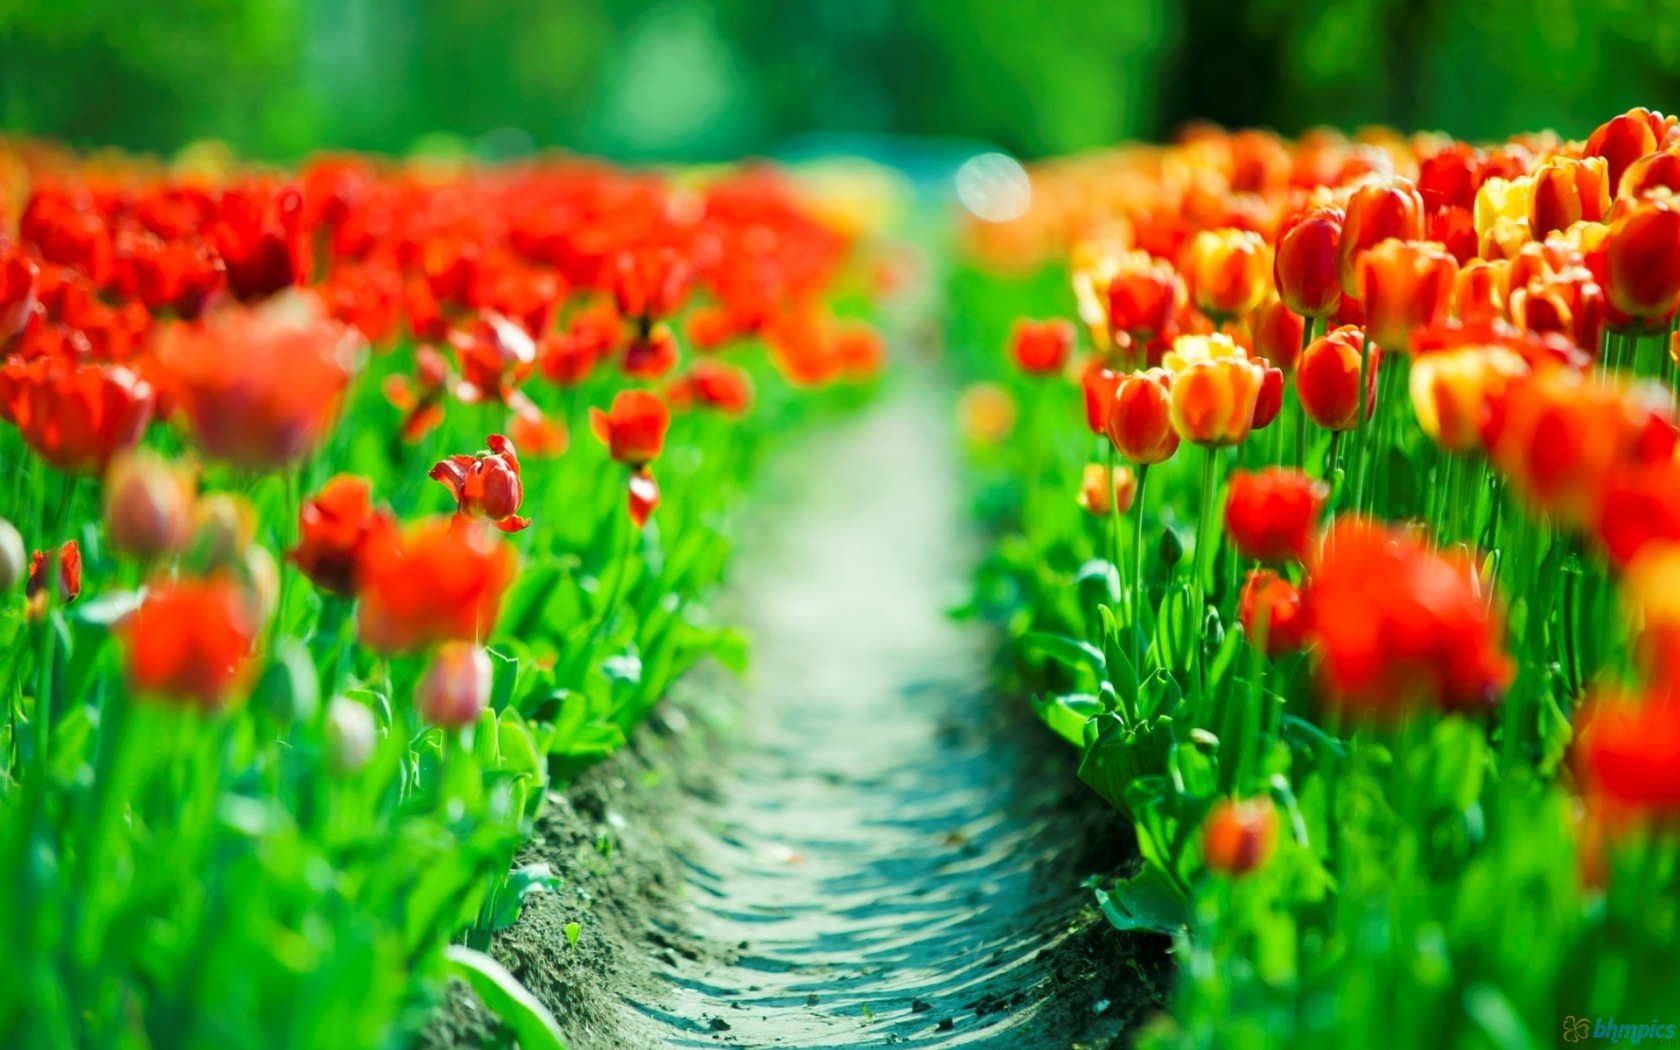 Tulip Wallpapers | Top 12 Tulip Wallpapers